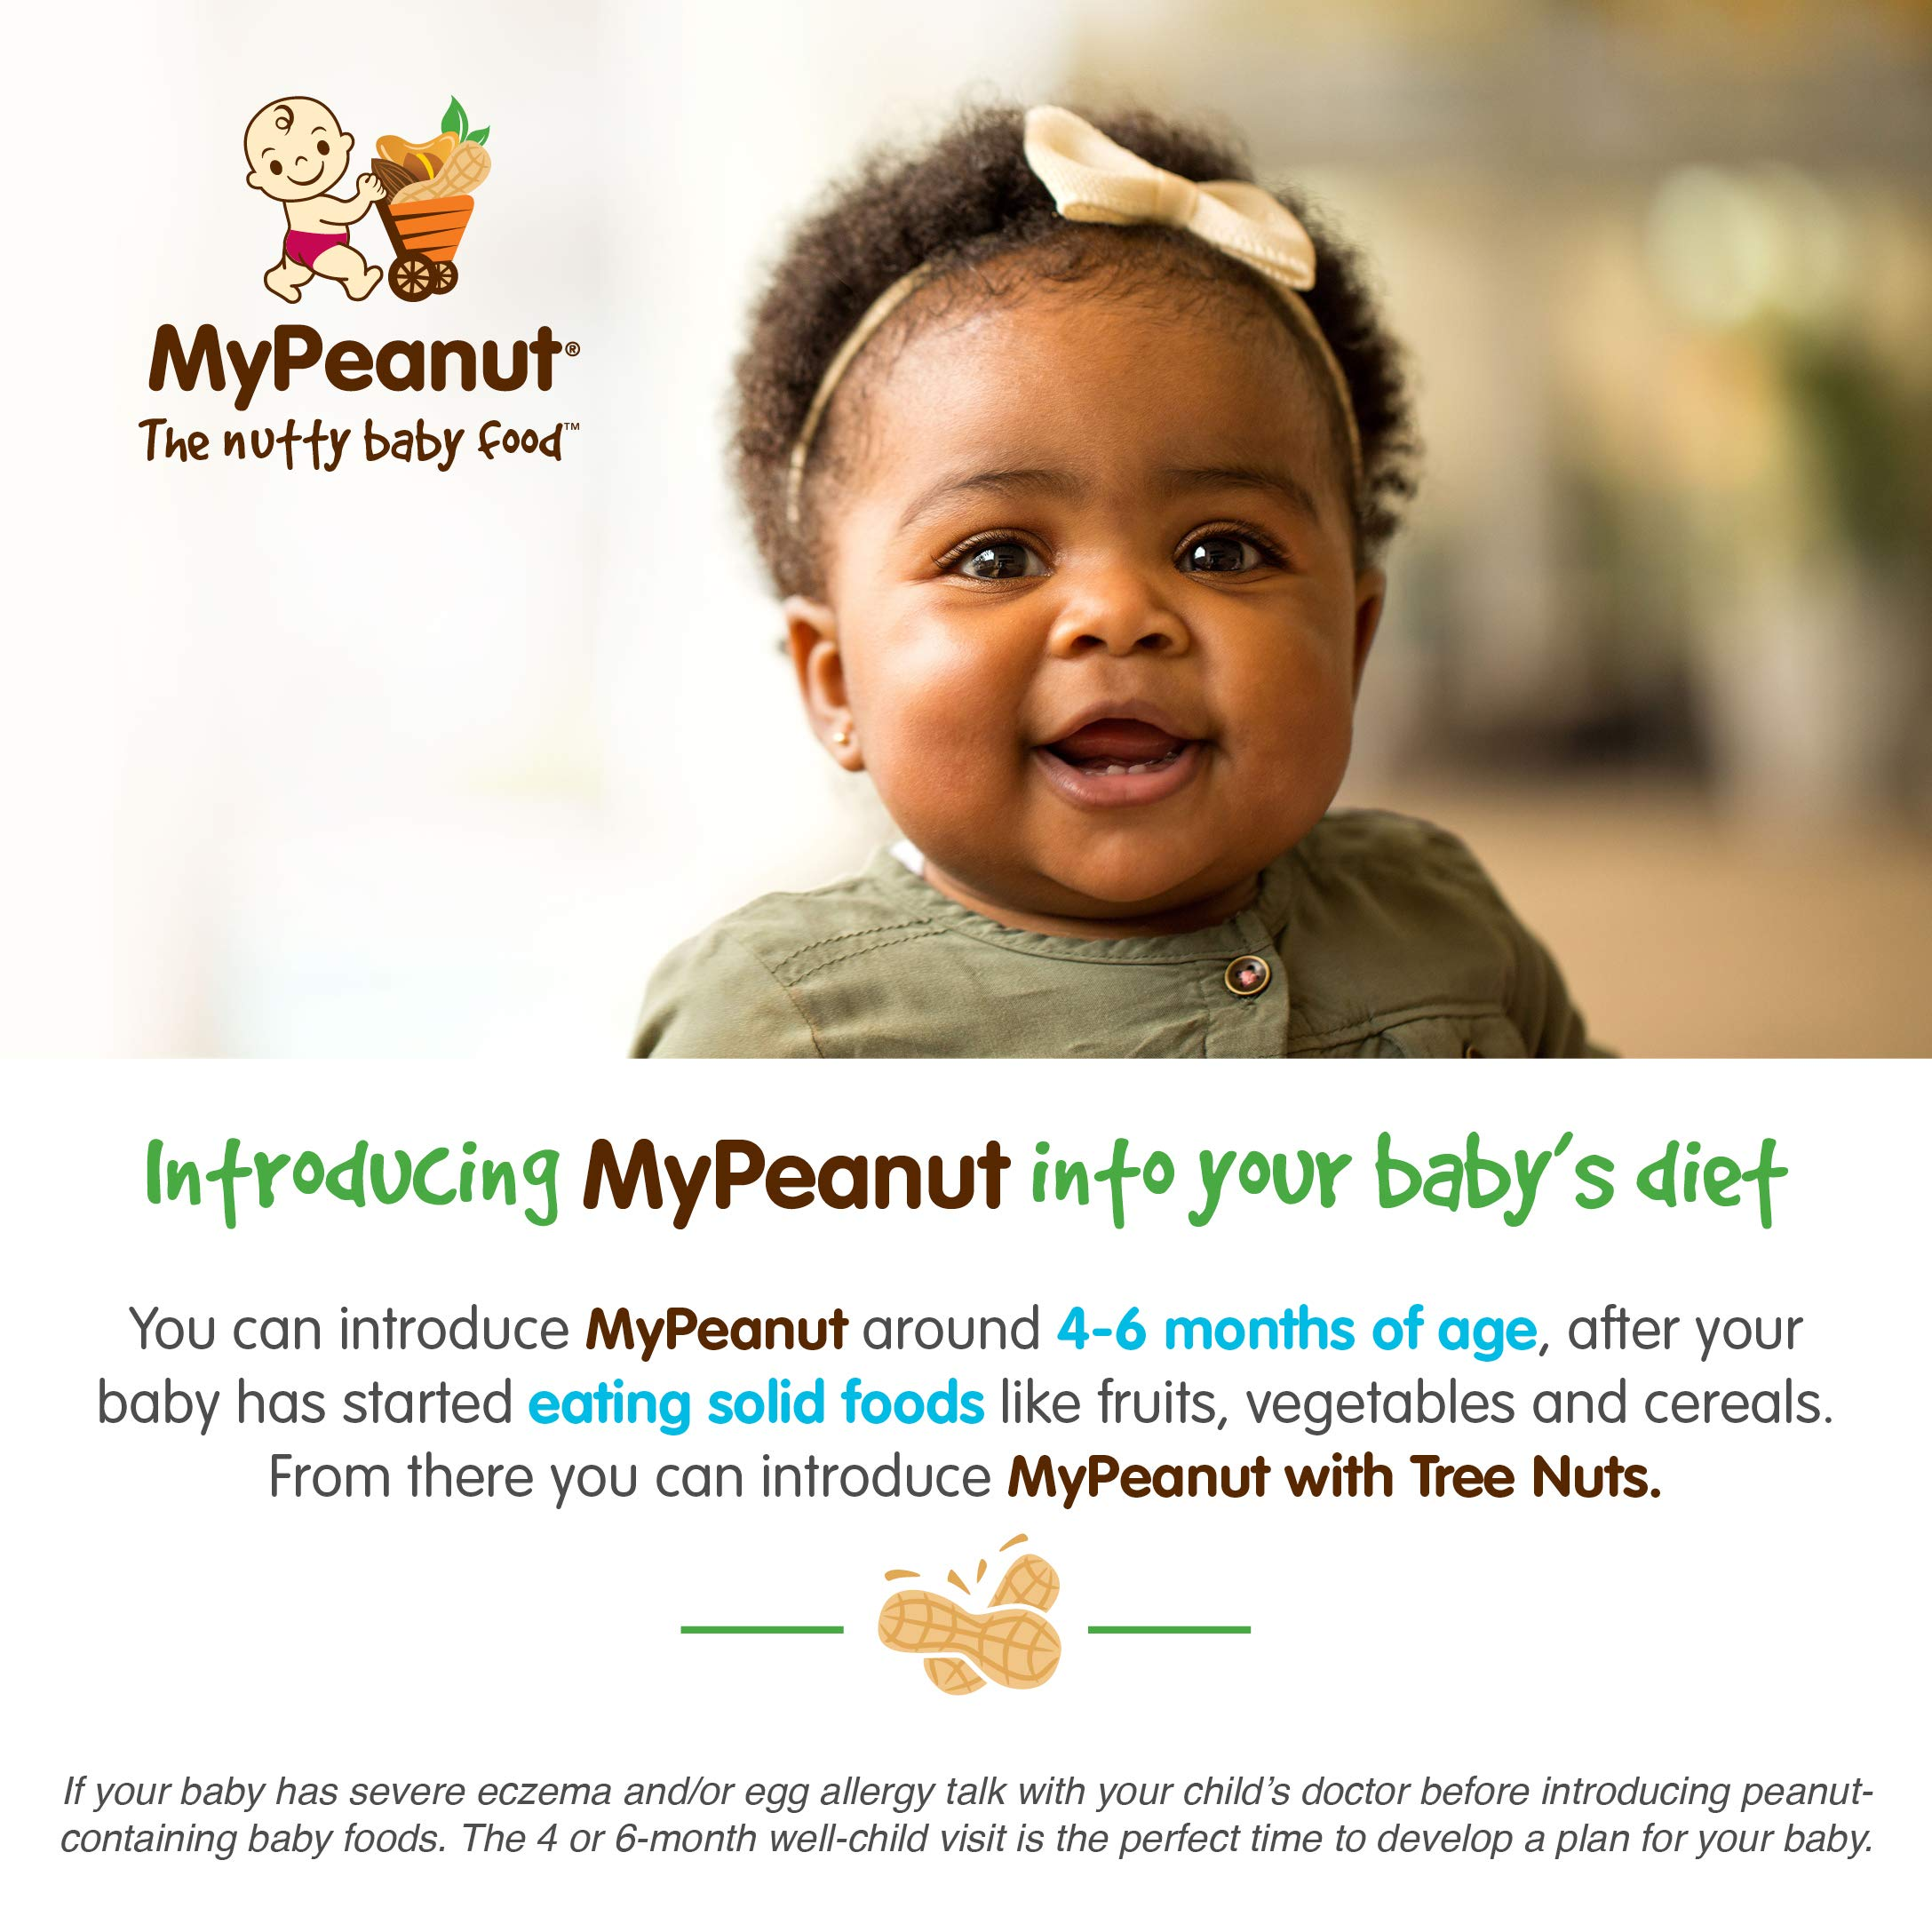 MyPeanut Baby Food, Organic Stage 1 Peanut and Apple Puree for Introducing and Feeding Babies and Toddlers Nuts, Non-GMO, BPA Free 3.5 oz Pouch, 18 Pack by MyPeanut (Image #5)